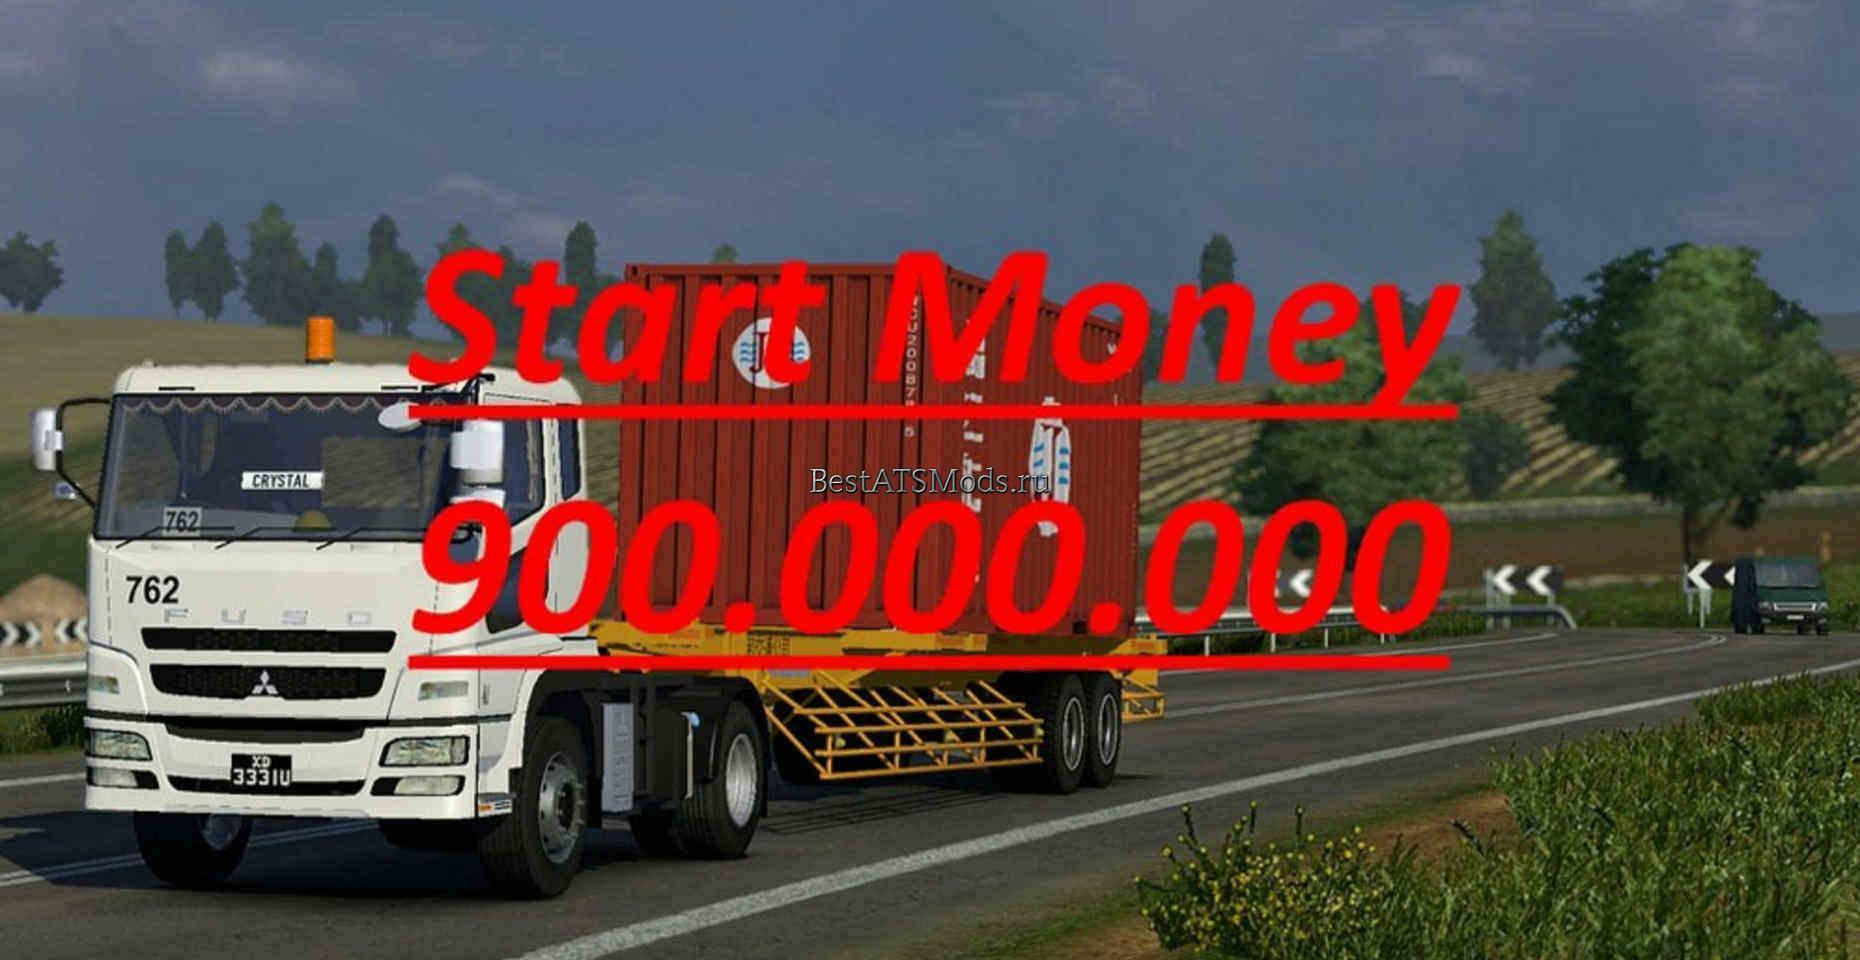 rsz_Мод_стартовый_капитал_start_money_900000000_for_american_truck_simulator